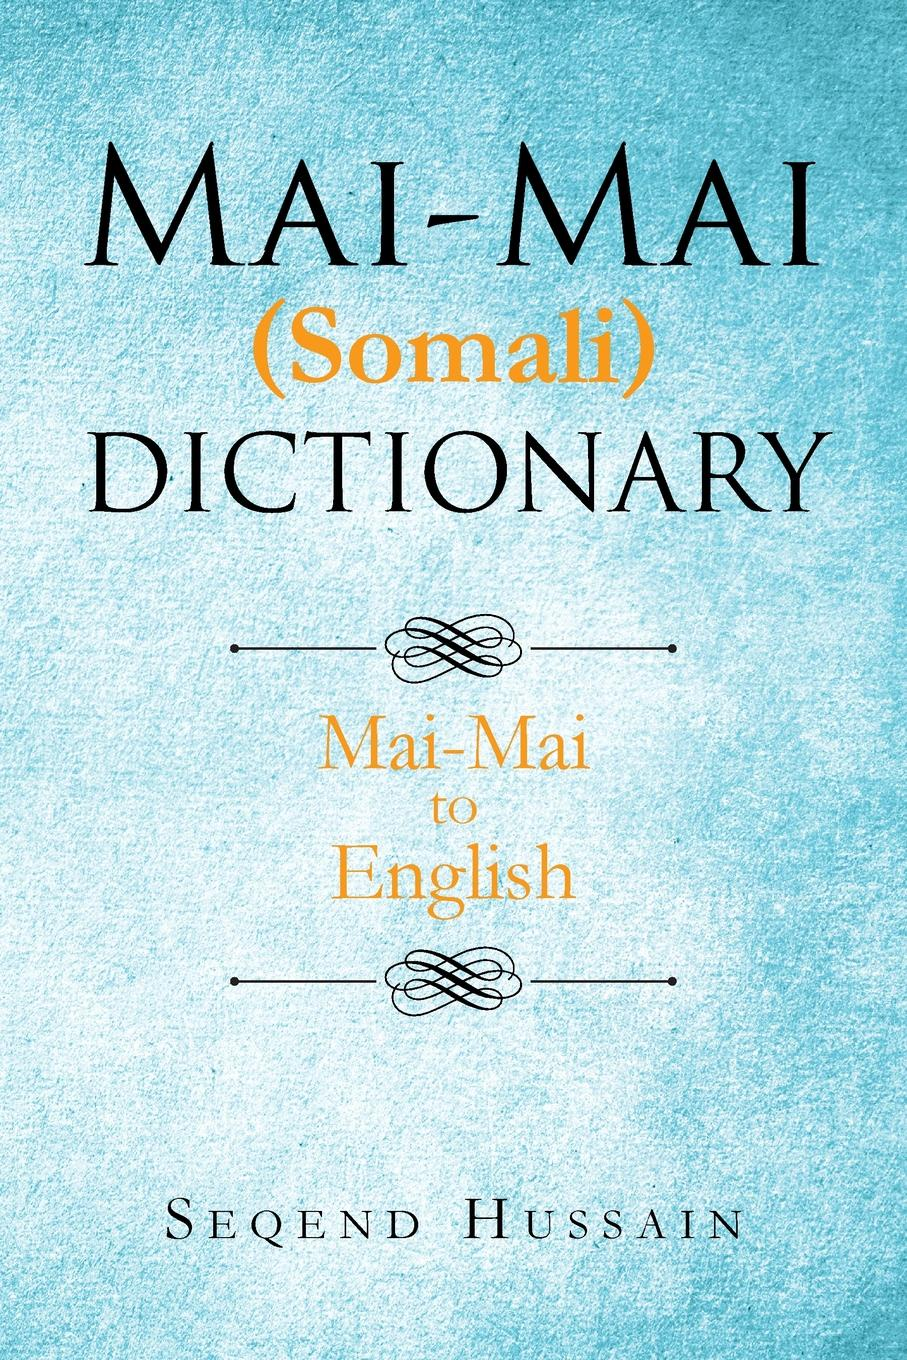 Seqend Hussain. Mai-Mai (Somali) Dictionary. Mai-Mai to English